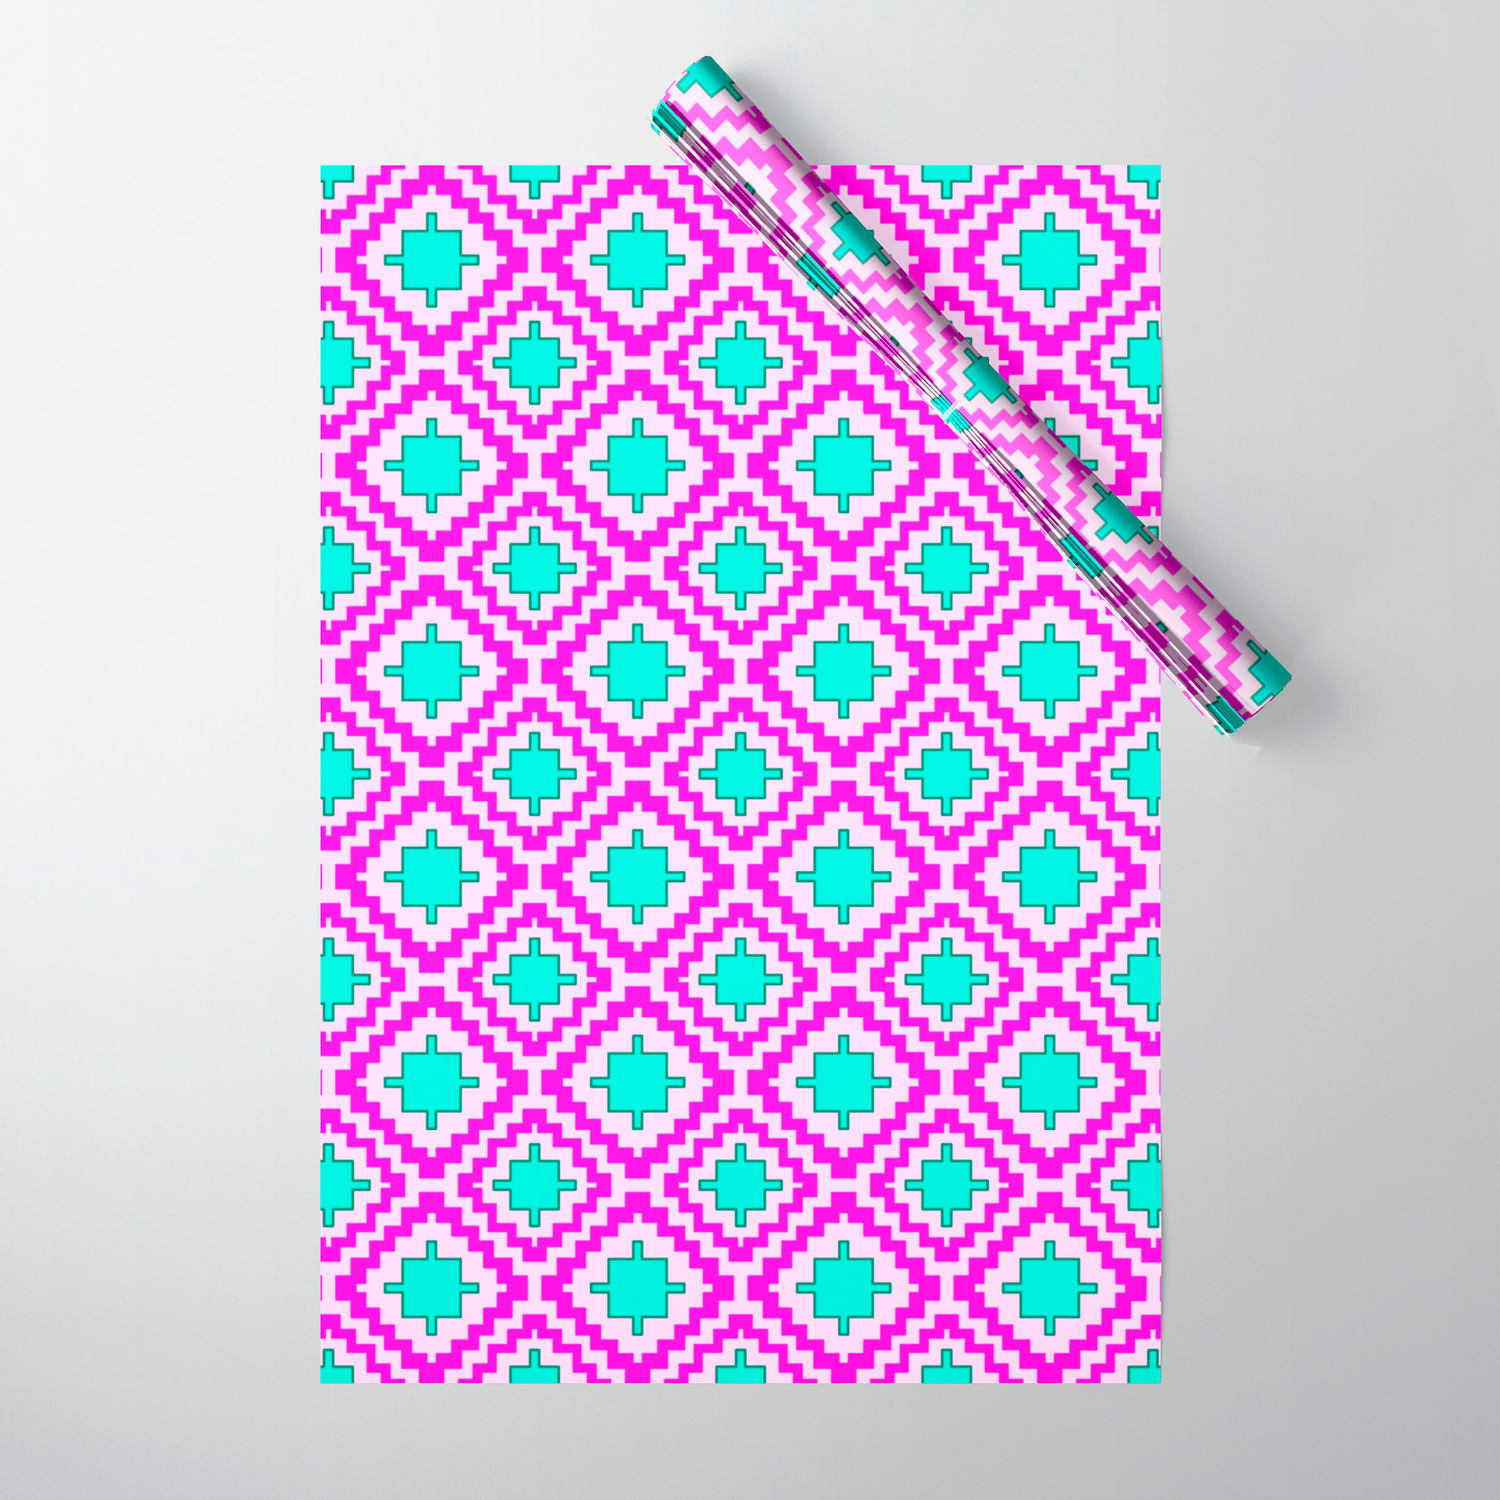 Cowgirl Pink And Turquoise Navajo Native Inspired Oklahoma Arizona Southwestern Design Pattern Wrapping Paperdpartgallery Regarding Southwest Pink Credenzas (View 7 of 30)